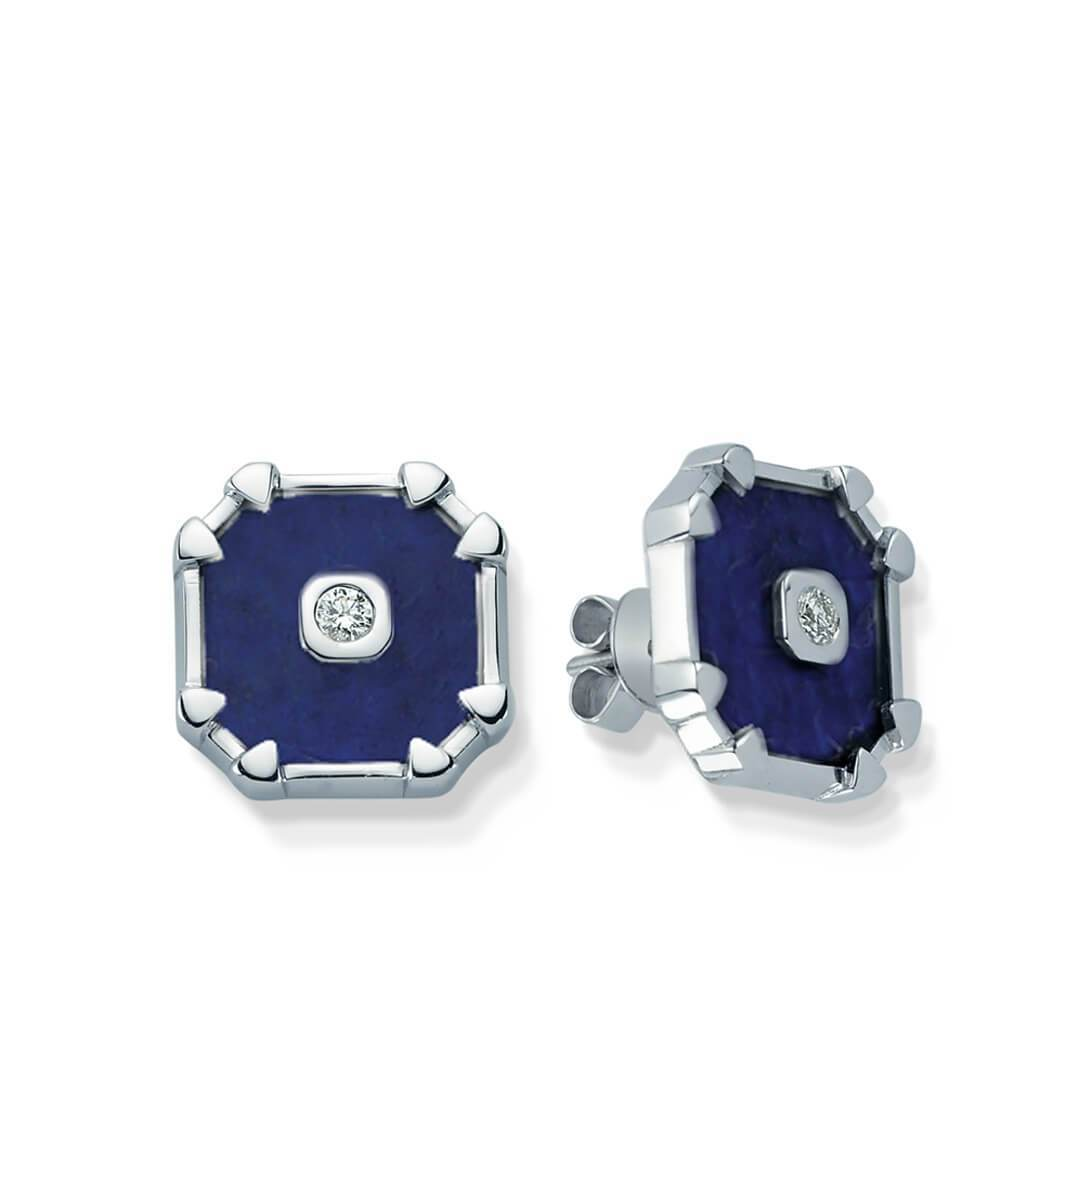 DEEPSEA LAPIS LAZULI DIAMOND SQUARE EARRINGS